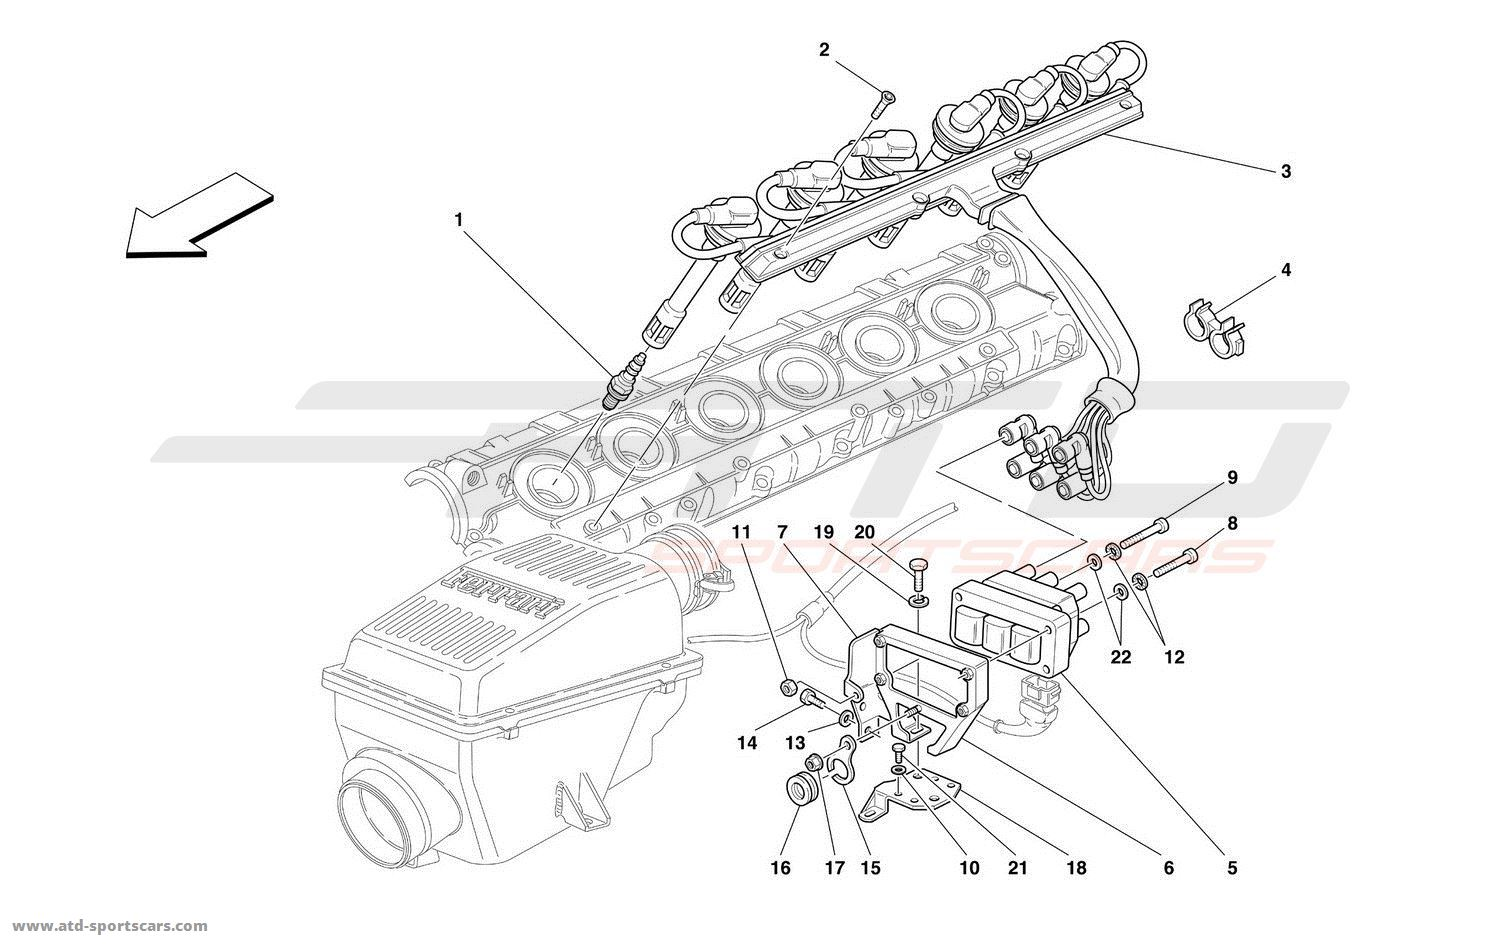 IGNITION DEVICE